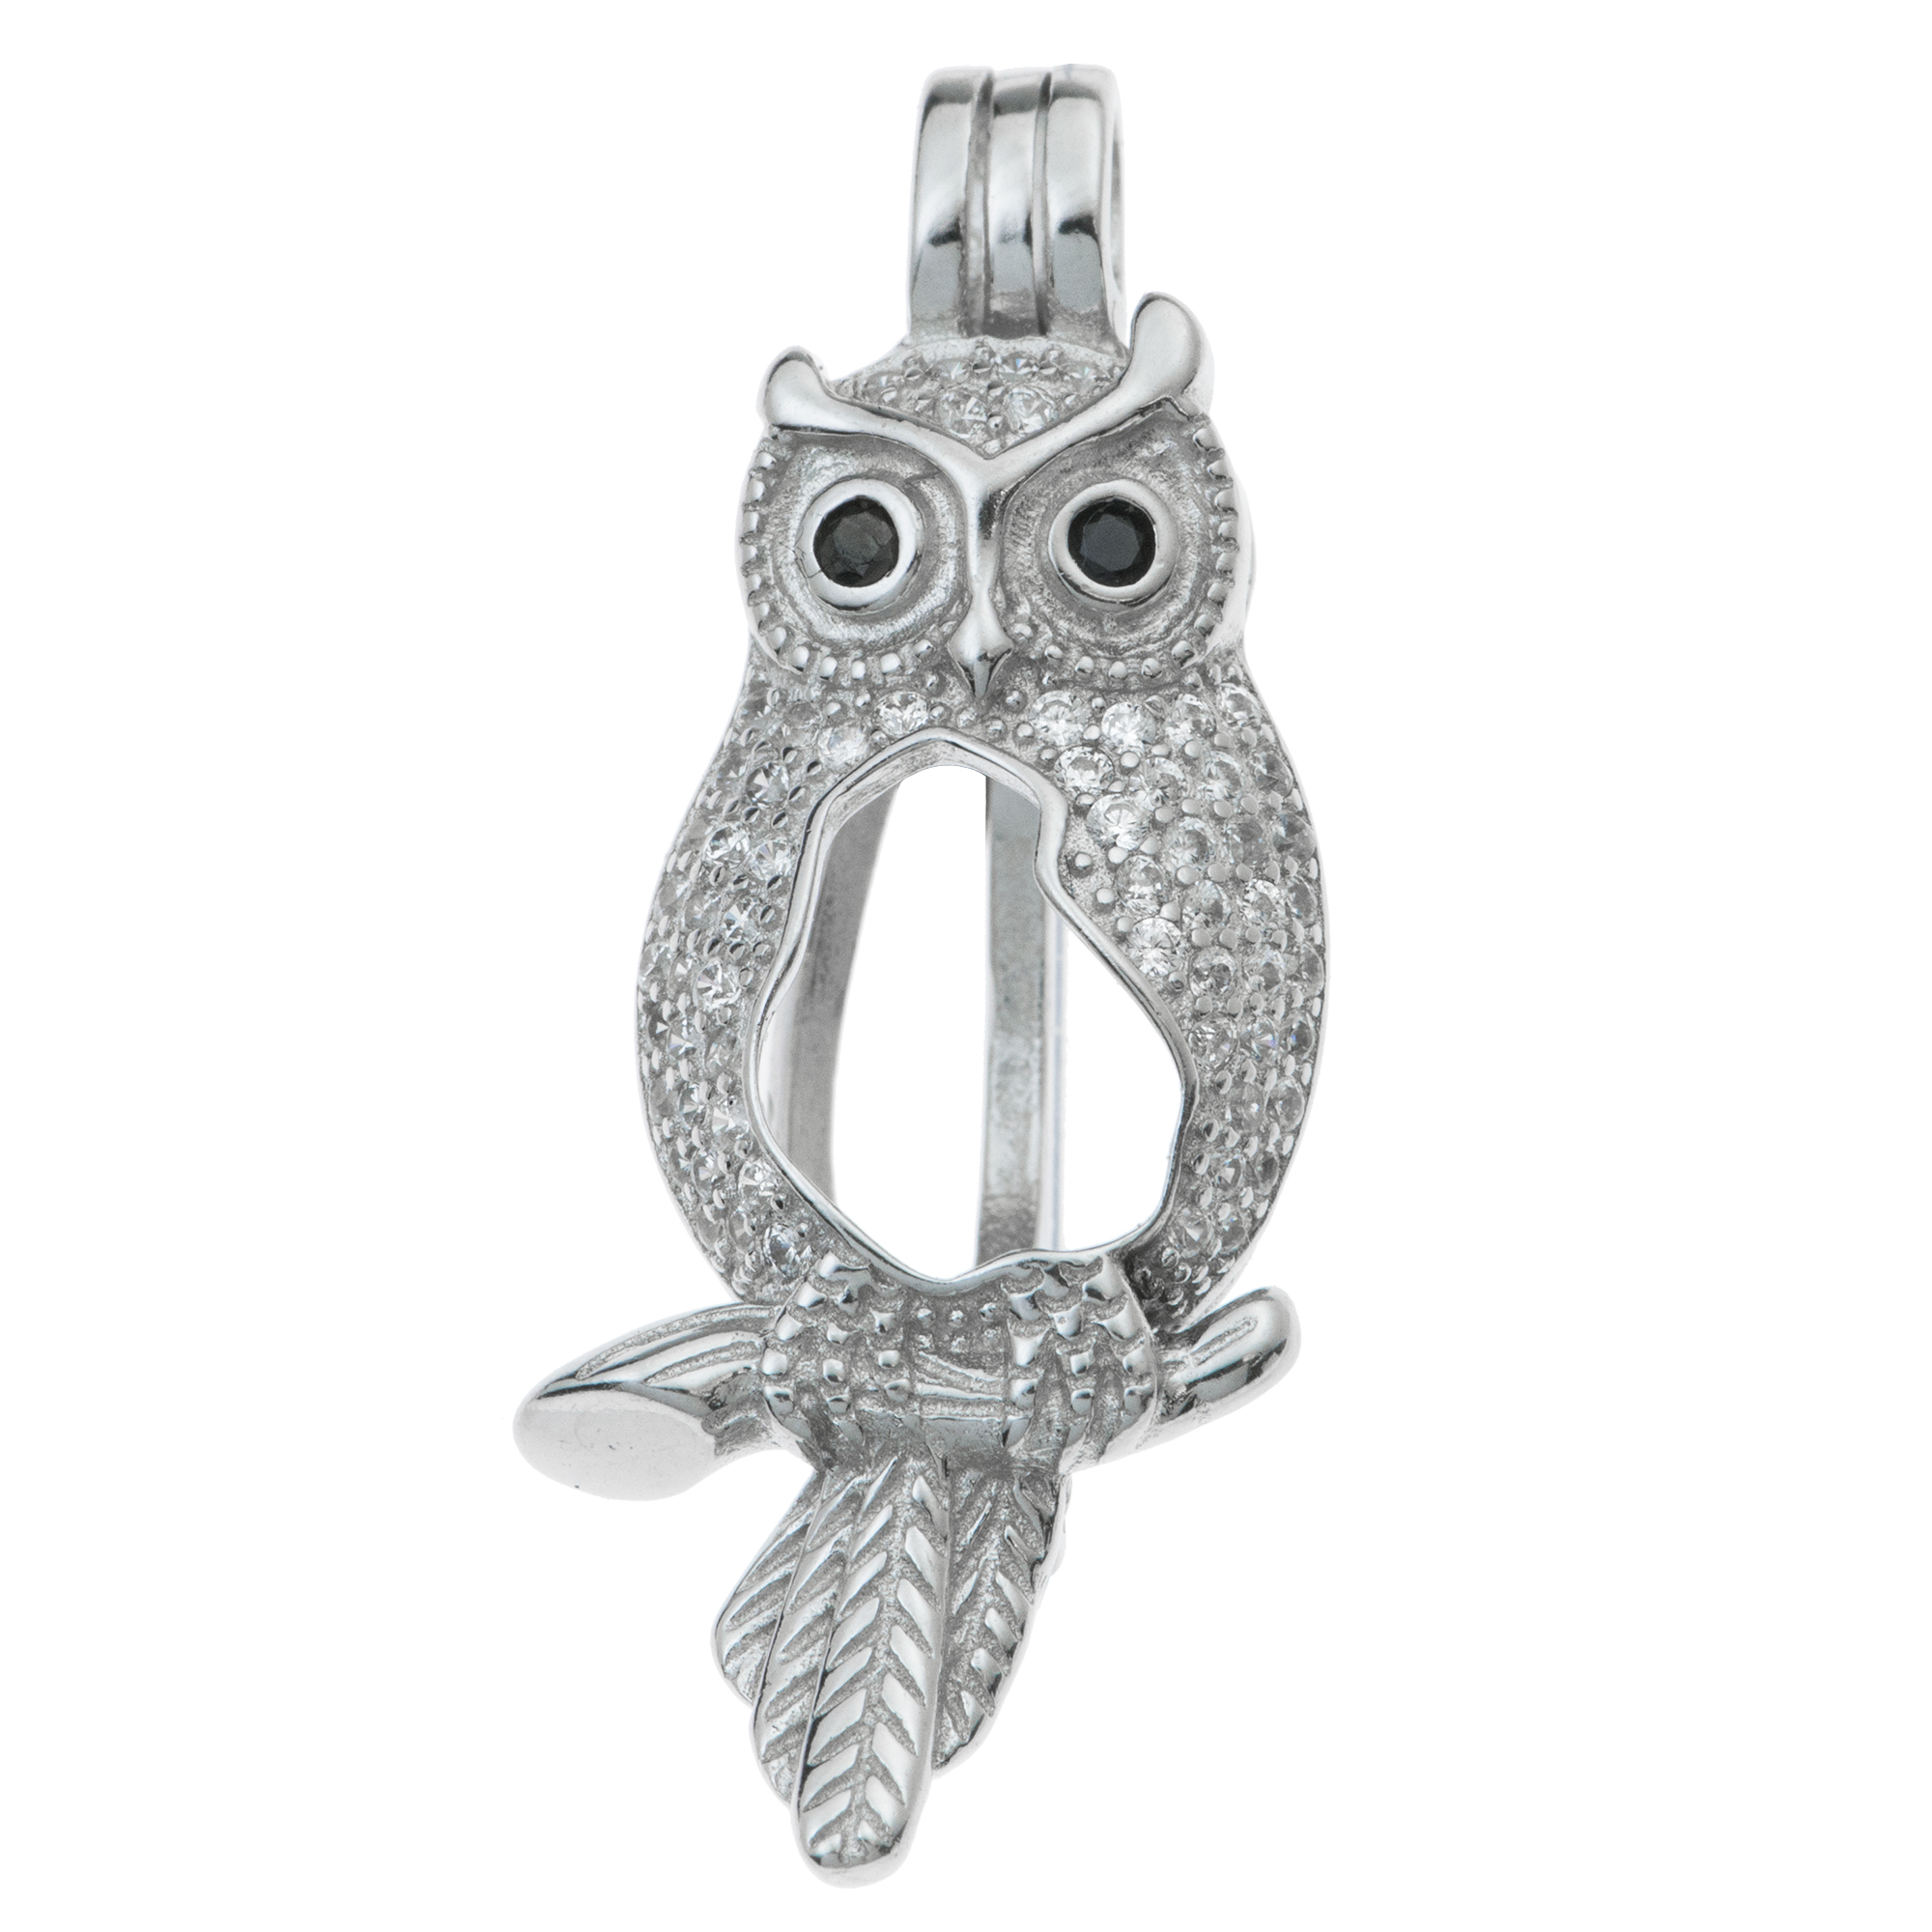 1x Rhodium on 925 Sterling Silver Owl CZ Interchangeable Pearl Bead Charm Pendant Holder